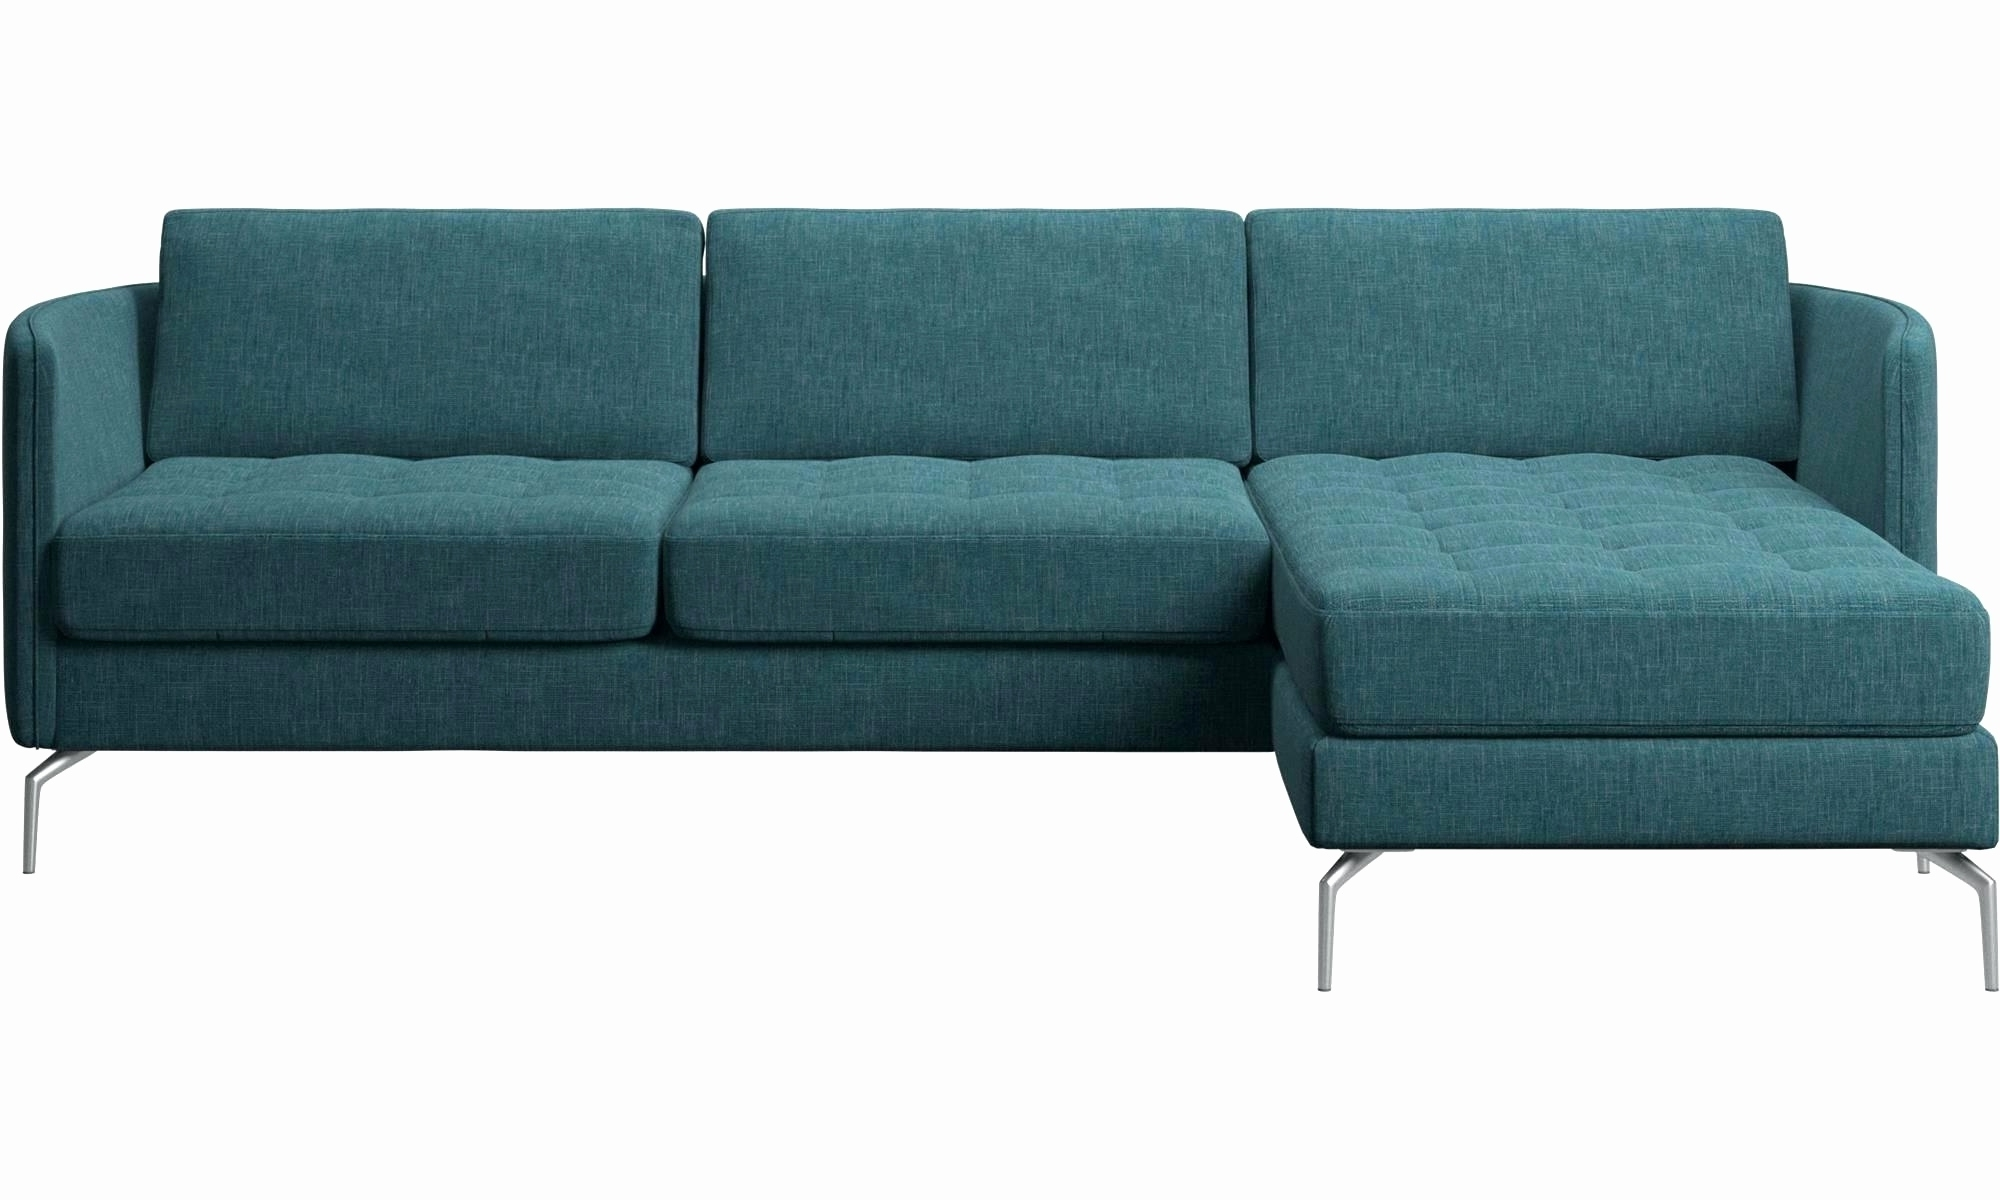 Most Current Sofas : 2 Piece Sectional Sofa Double Chaise Lounge Sofa Chaise Regarding Sofas With Chaise Lounge (View 3 of 15)